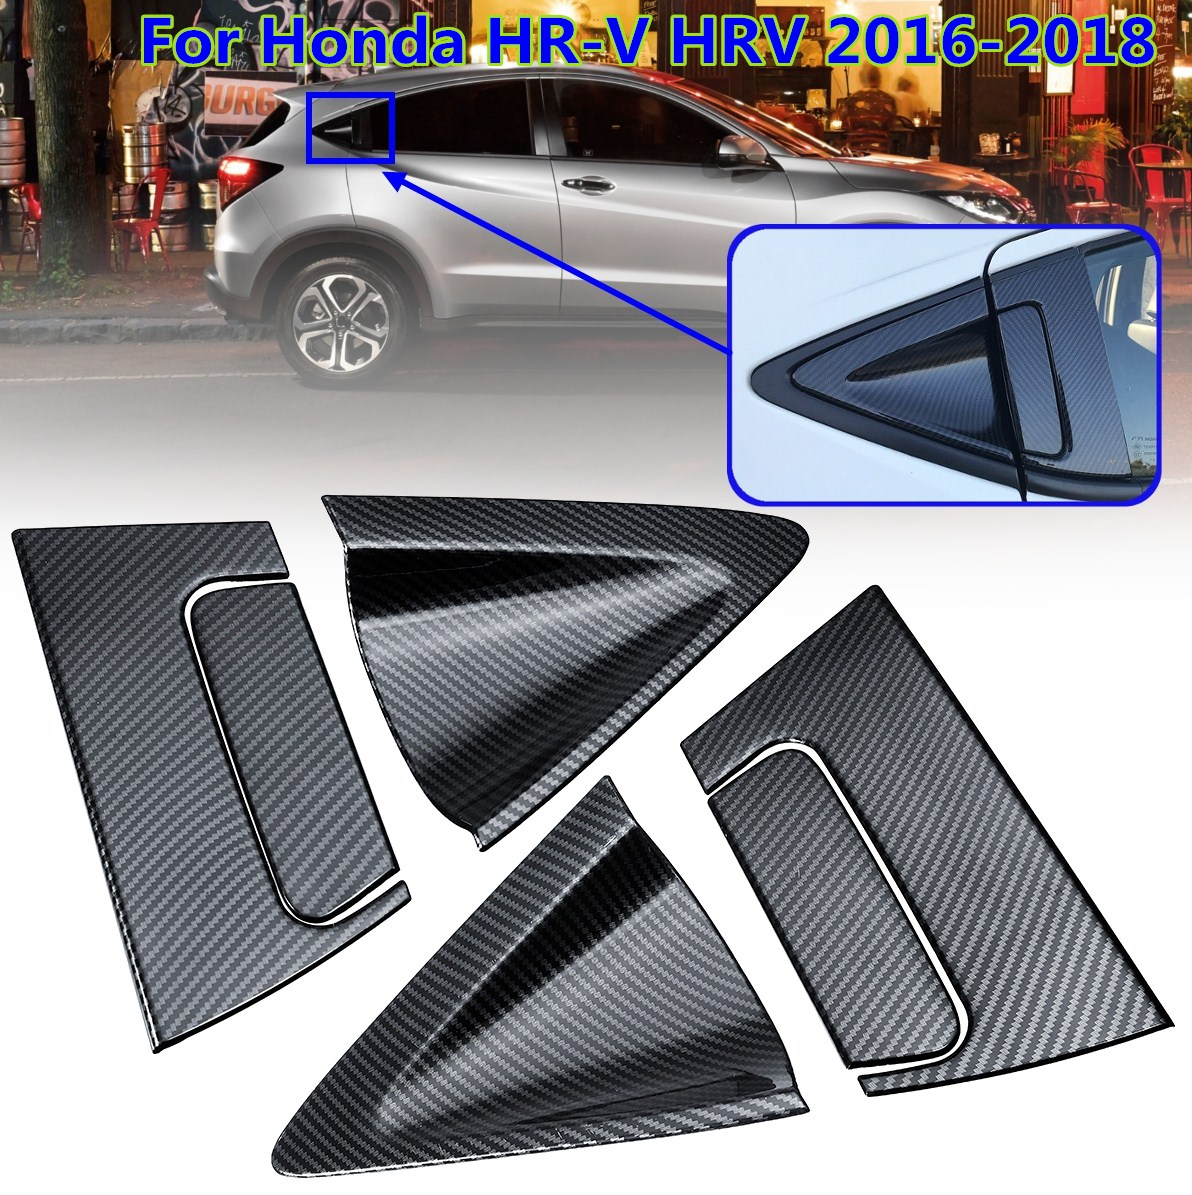 For <font><b>Honda</b></font> Vezel HR-V <font><b>HRV</b></font> 2016 2017 2018 Car <font><b>Accessories</b></font> 6 x ABS Chrome/Carbon fiber Side Rear Door Handle Bowl Cover Insert Trim image